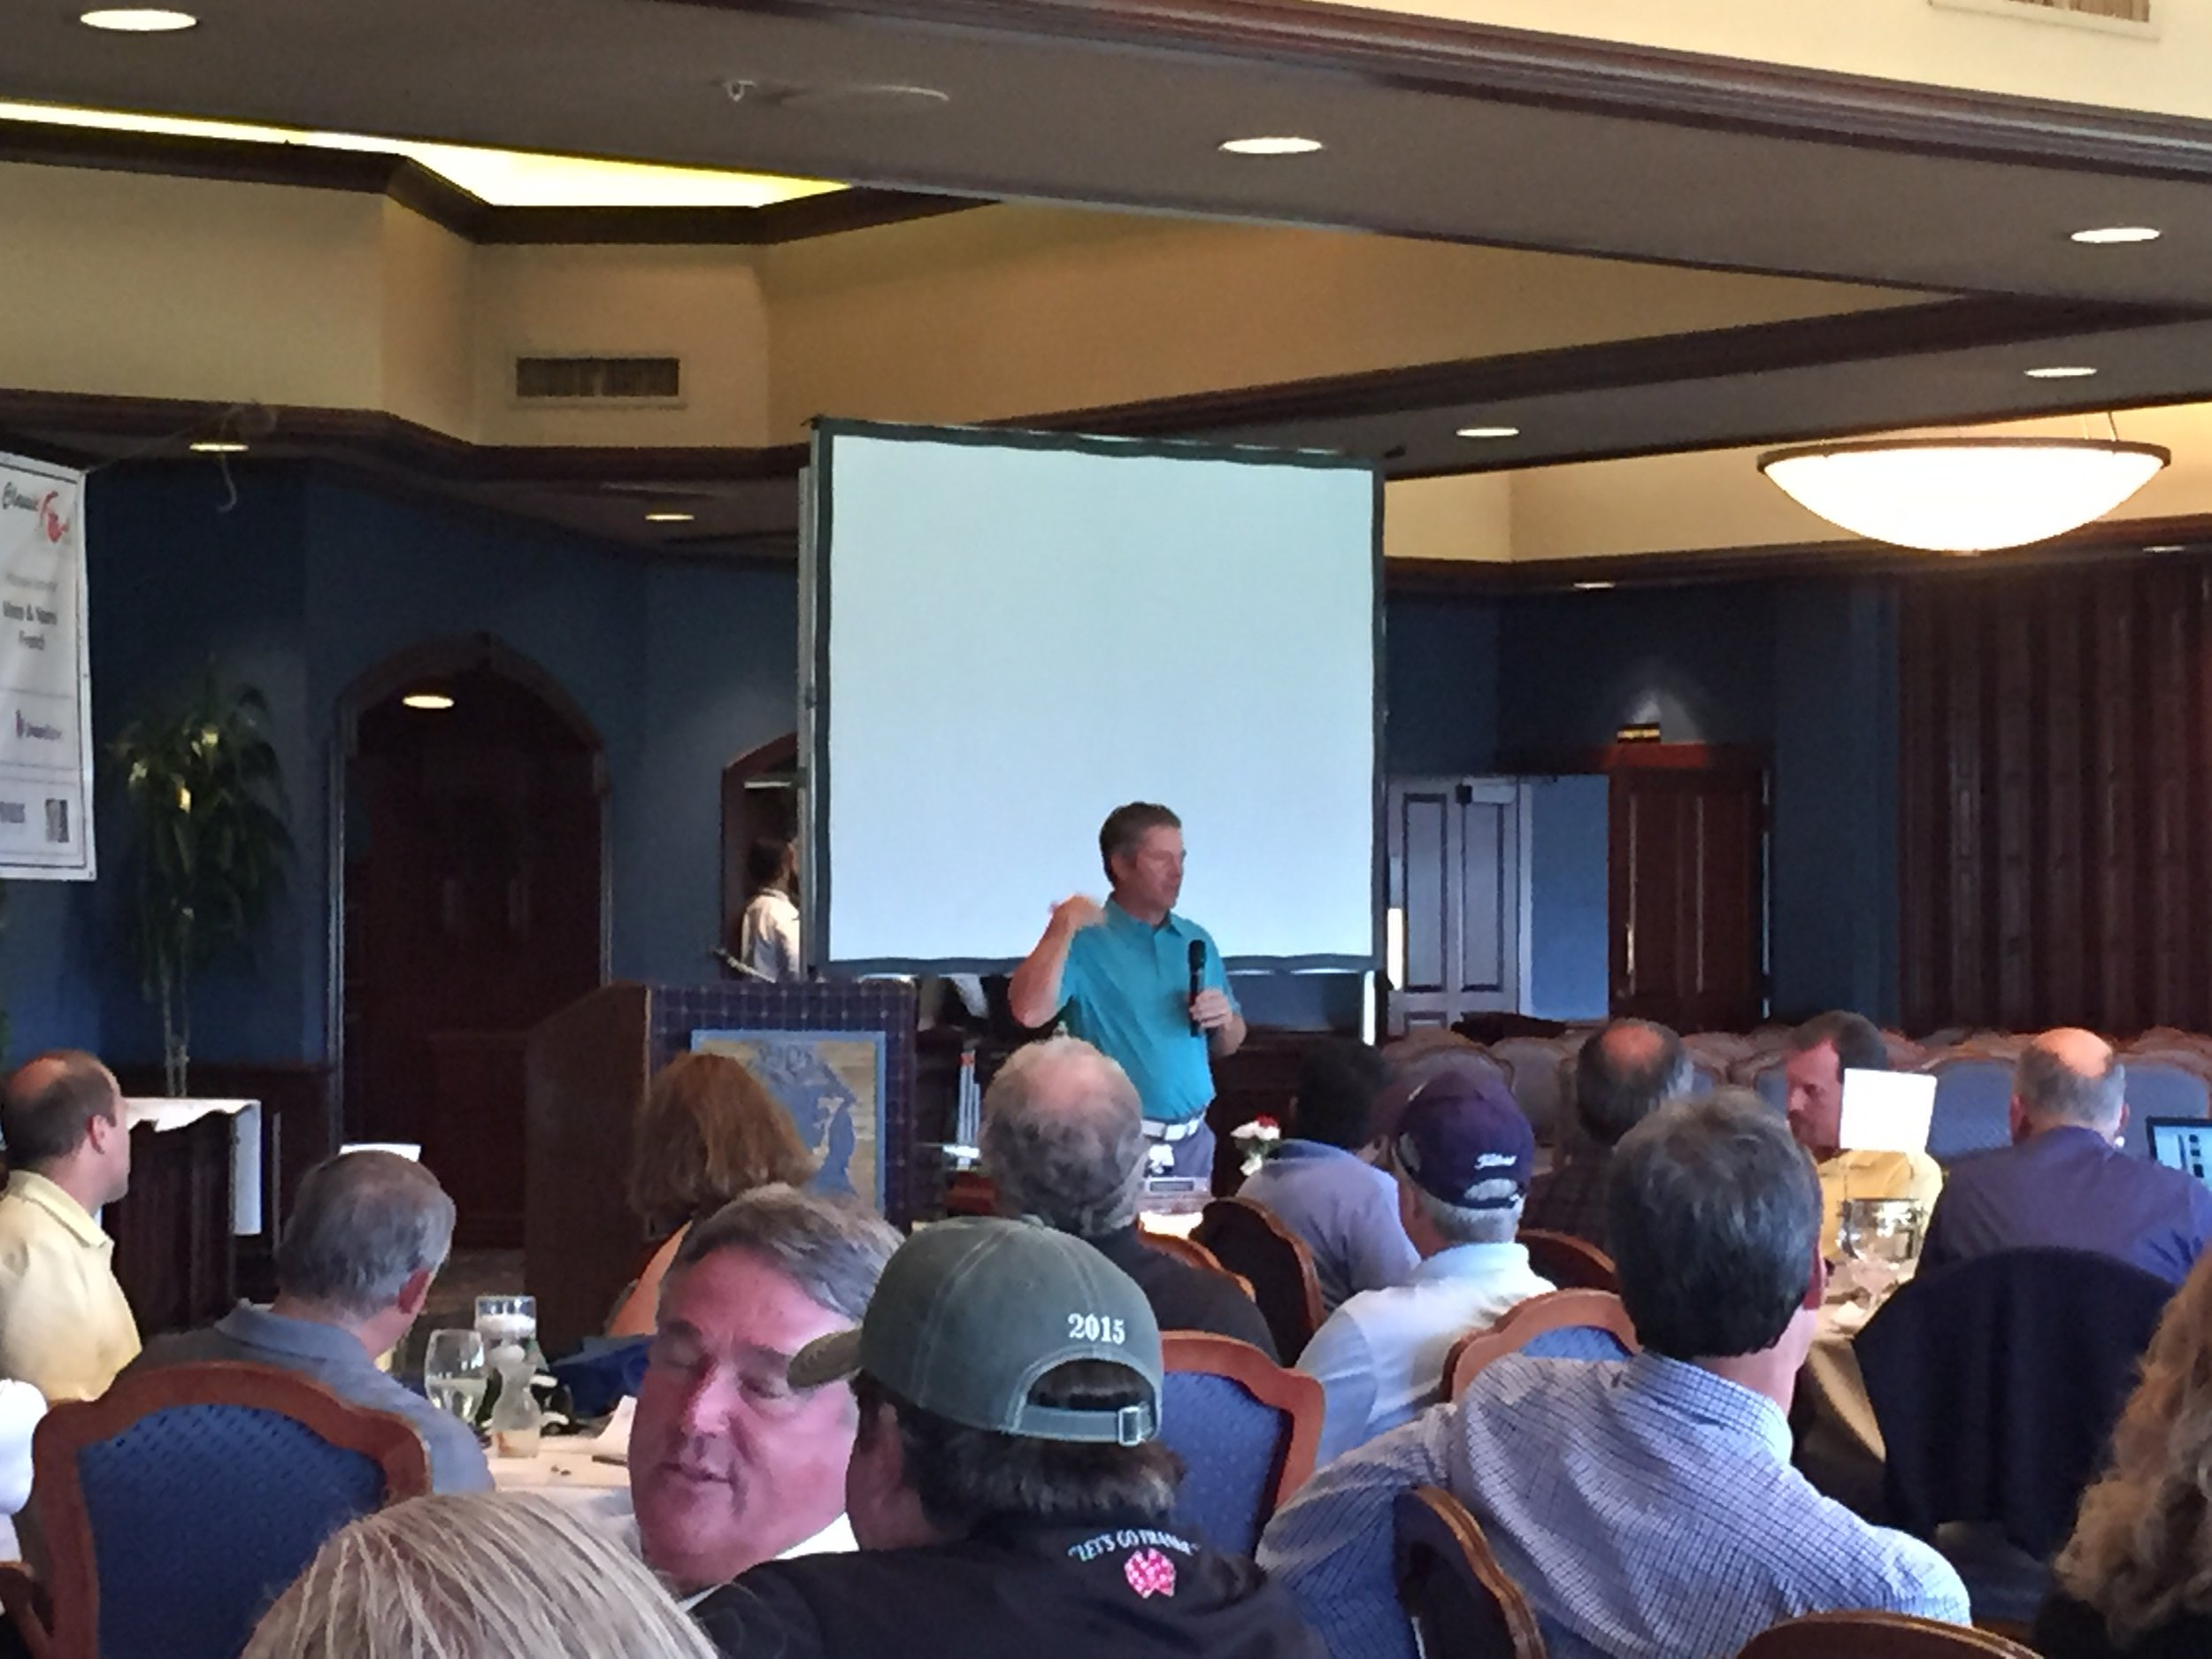 Bruchet as the keynote speaker for the 10th Annual Salvation Army Golf Tournament in Riverside, California.